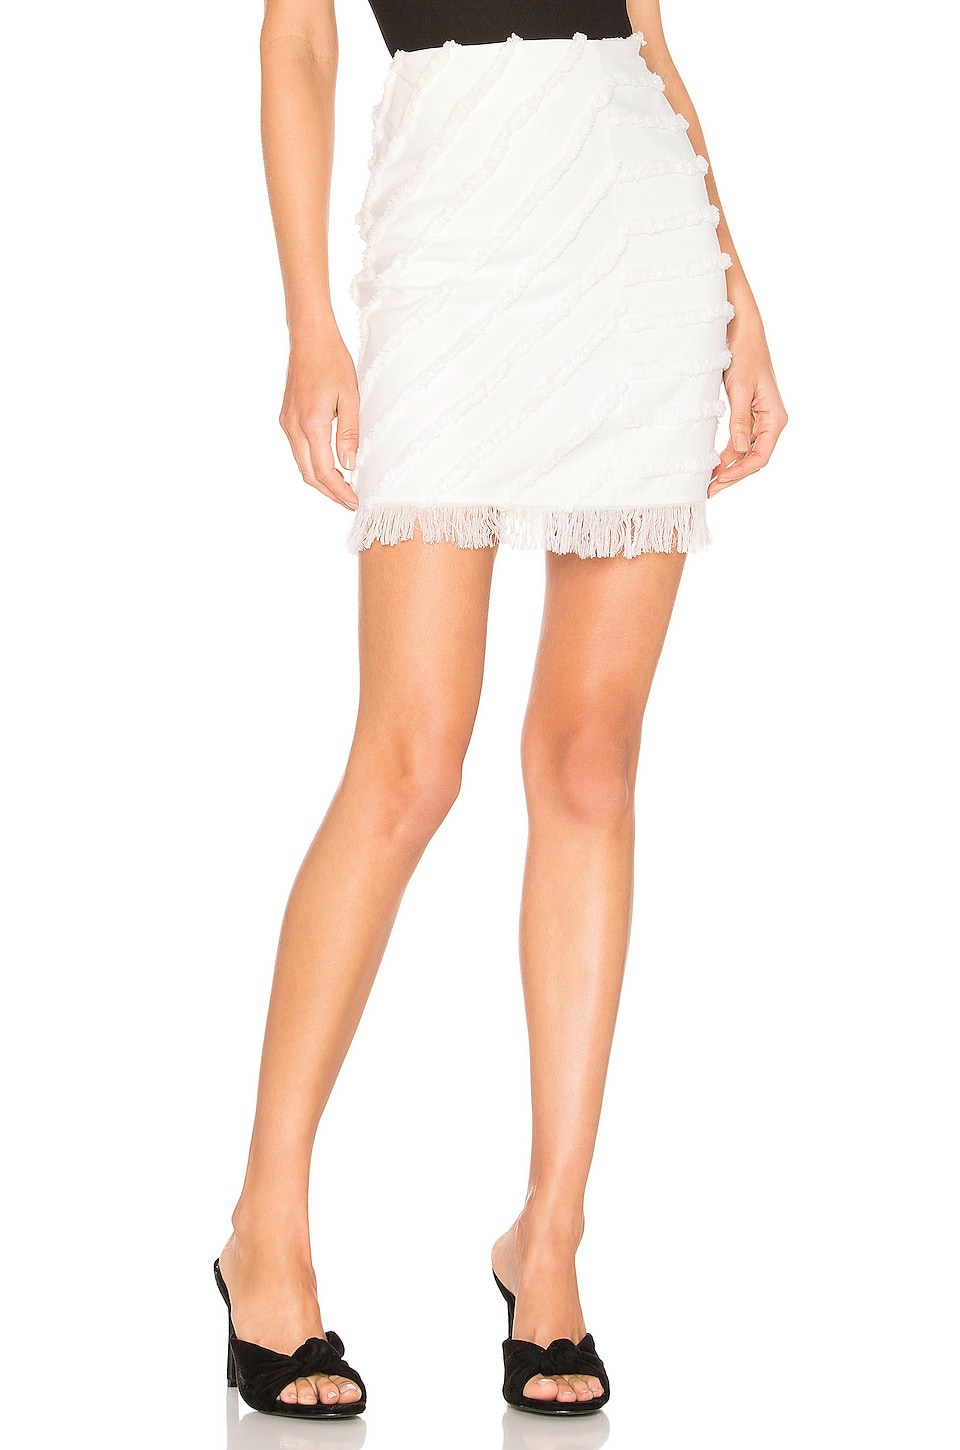 House of Harlow 1960 X REVOLVE Aimee Skirt in Ivory